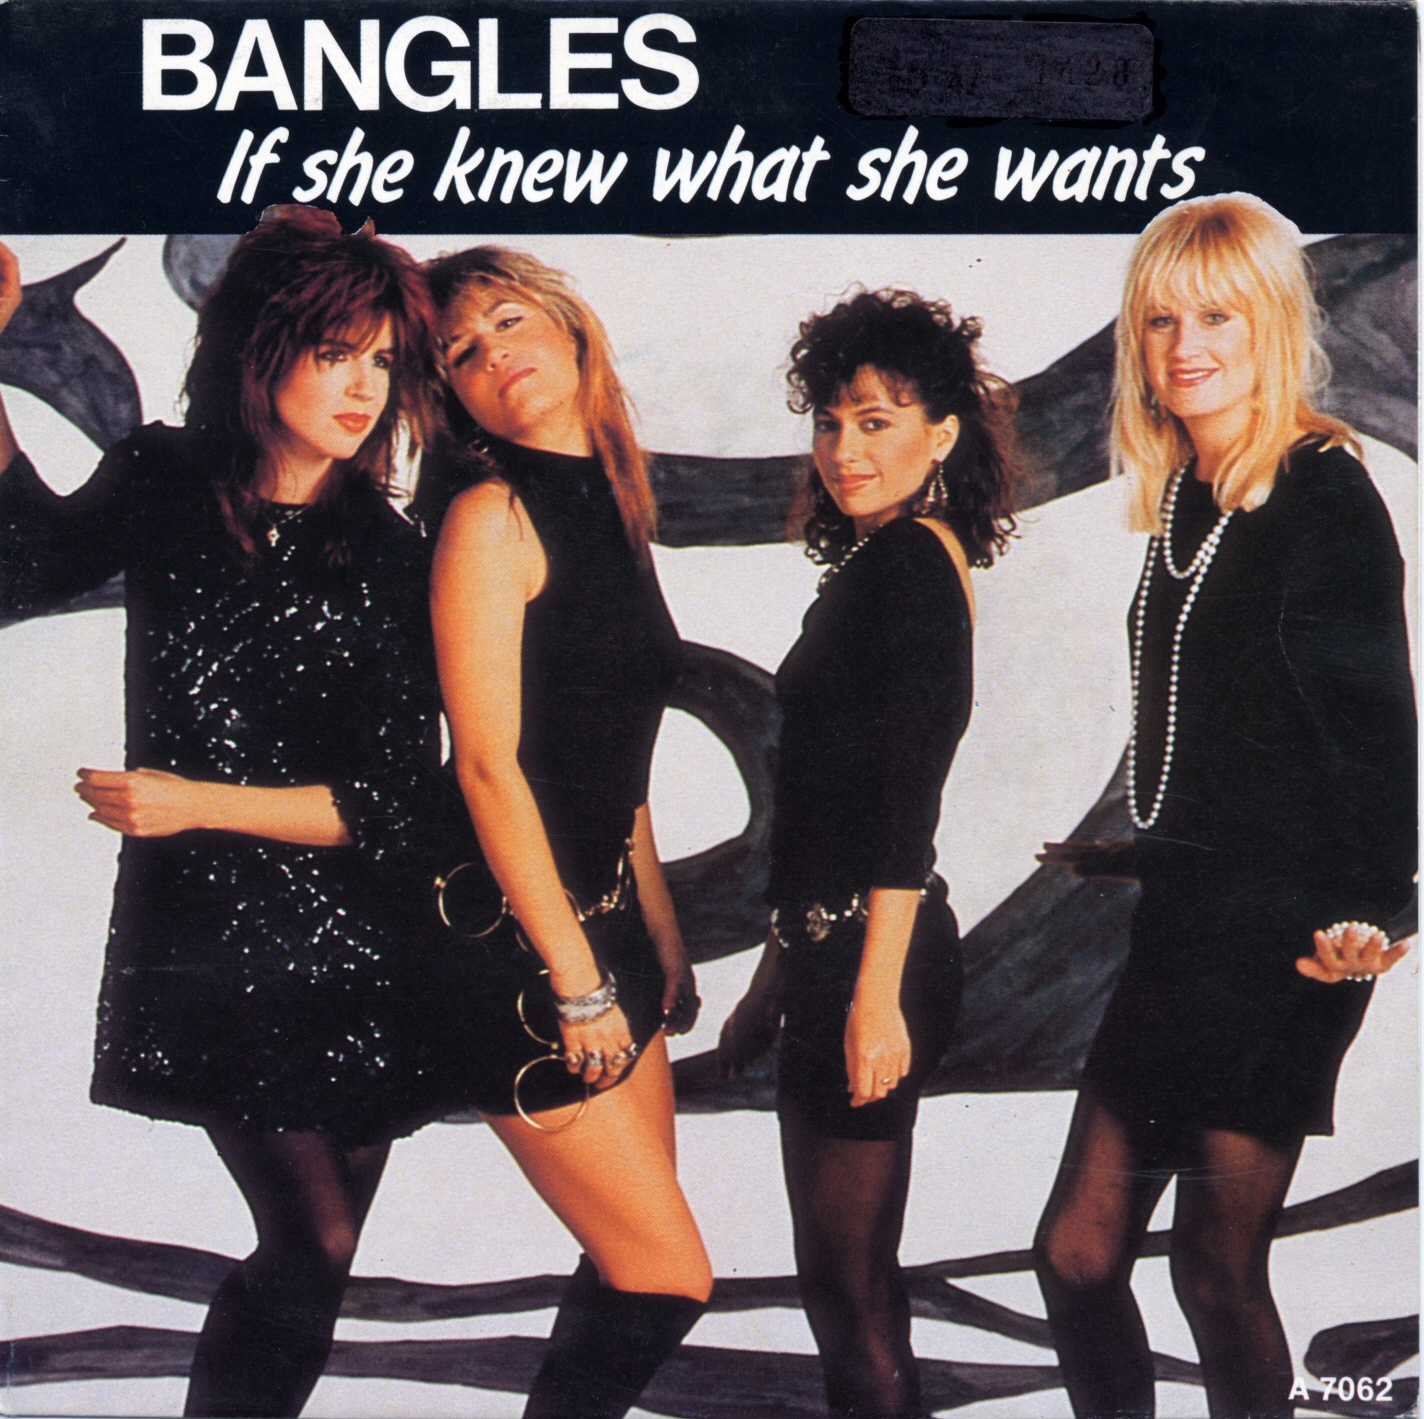 Cover: If she knew what she wants, Bangles